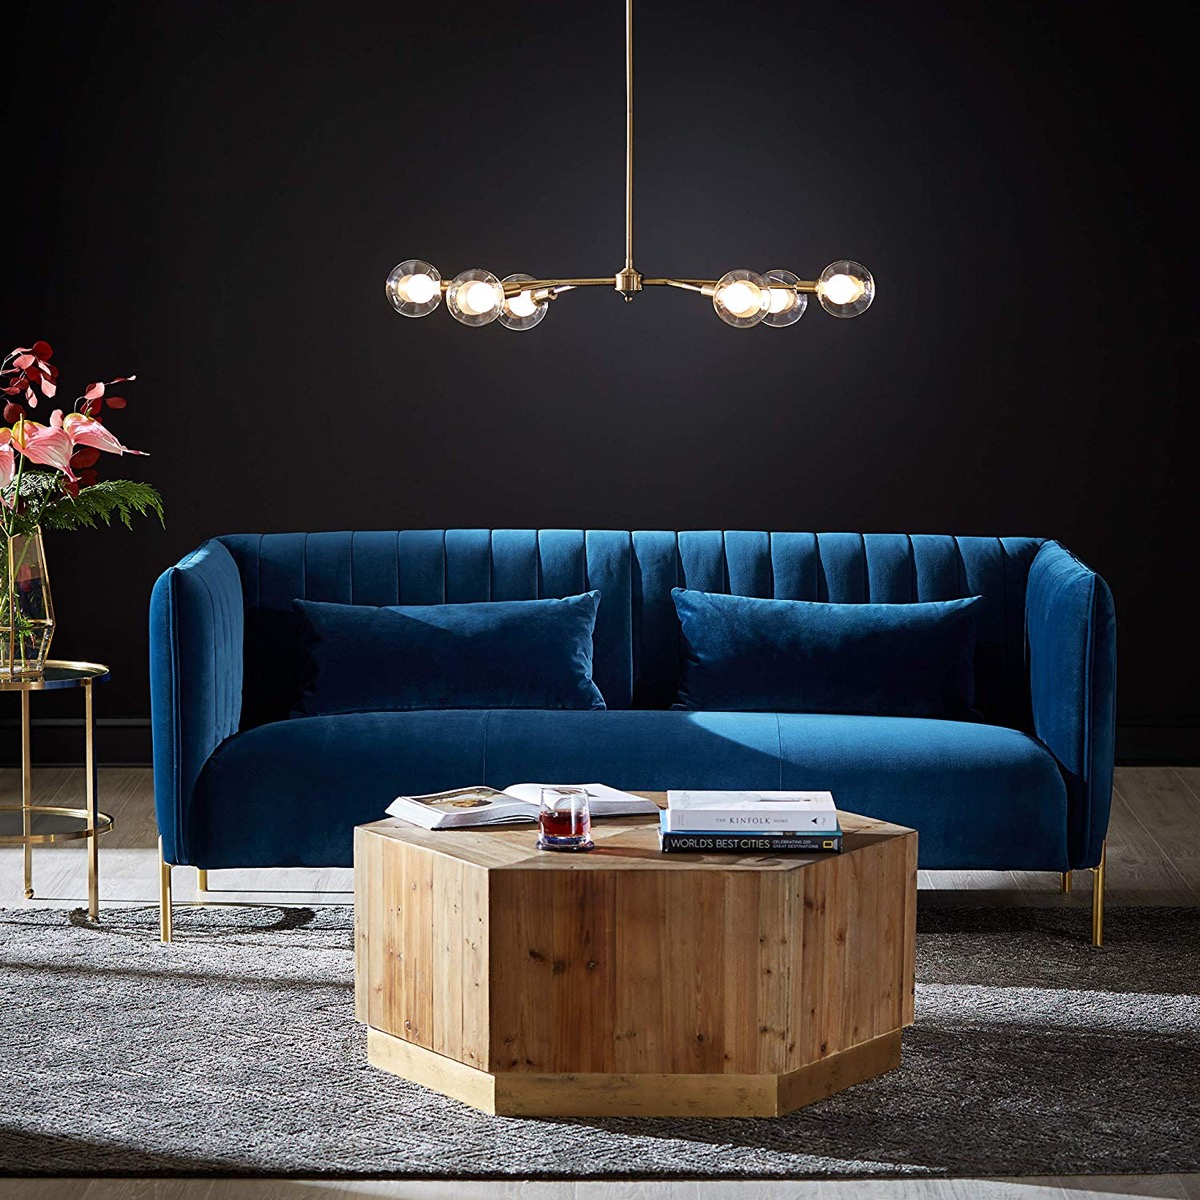 blue-velvet-tufted-sofa-with-brass-legs-for-hollywood-regency-interior-decor-style